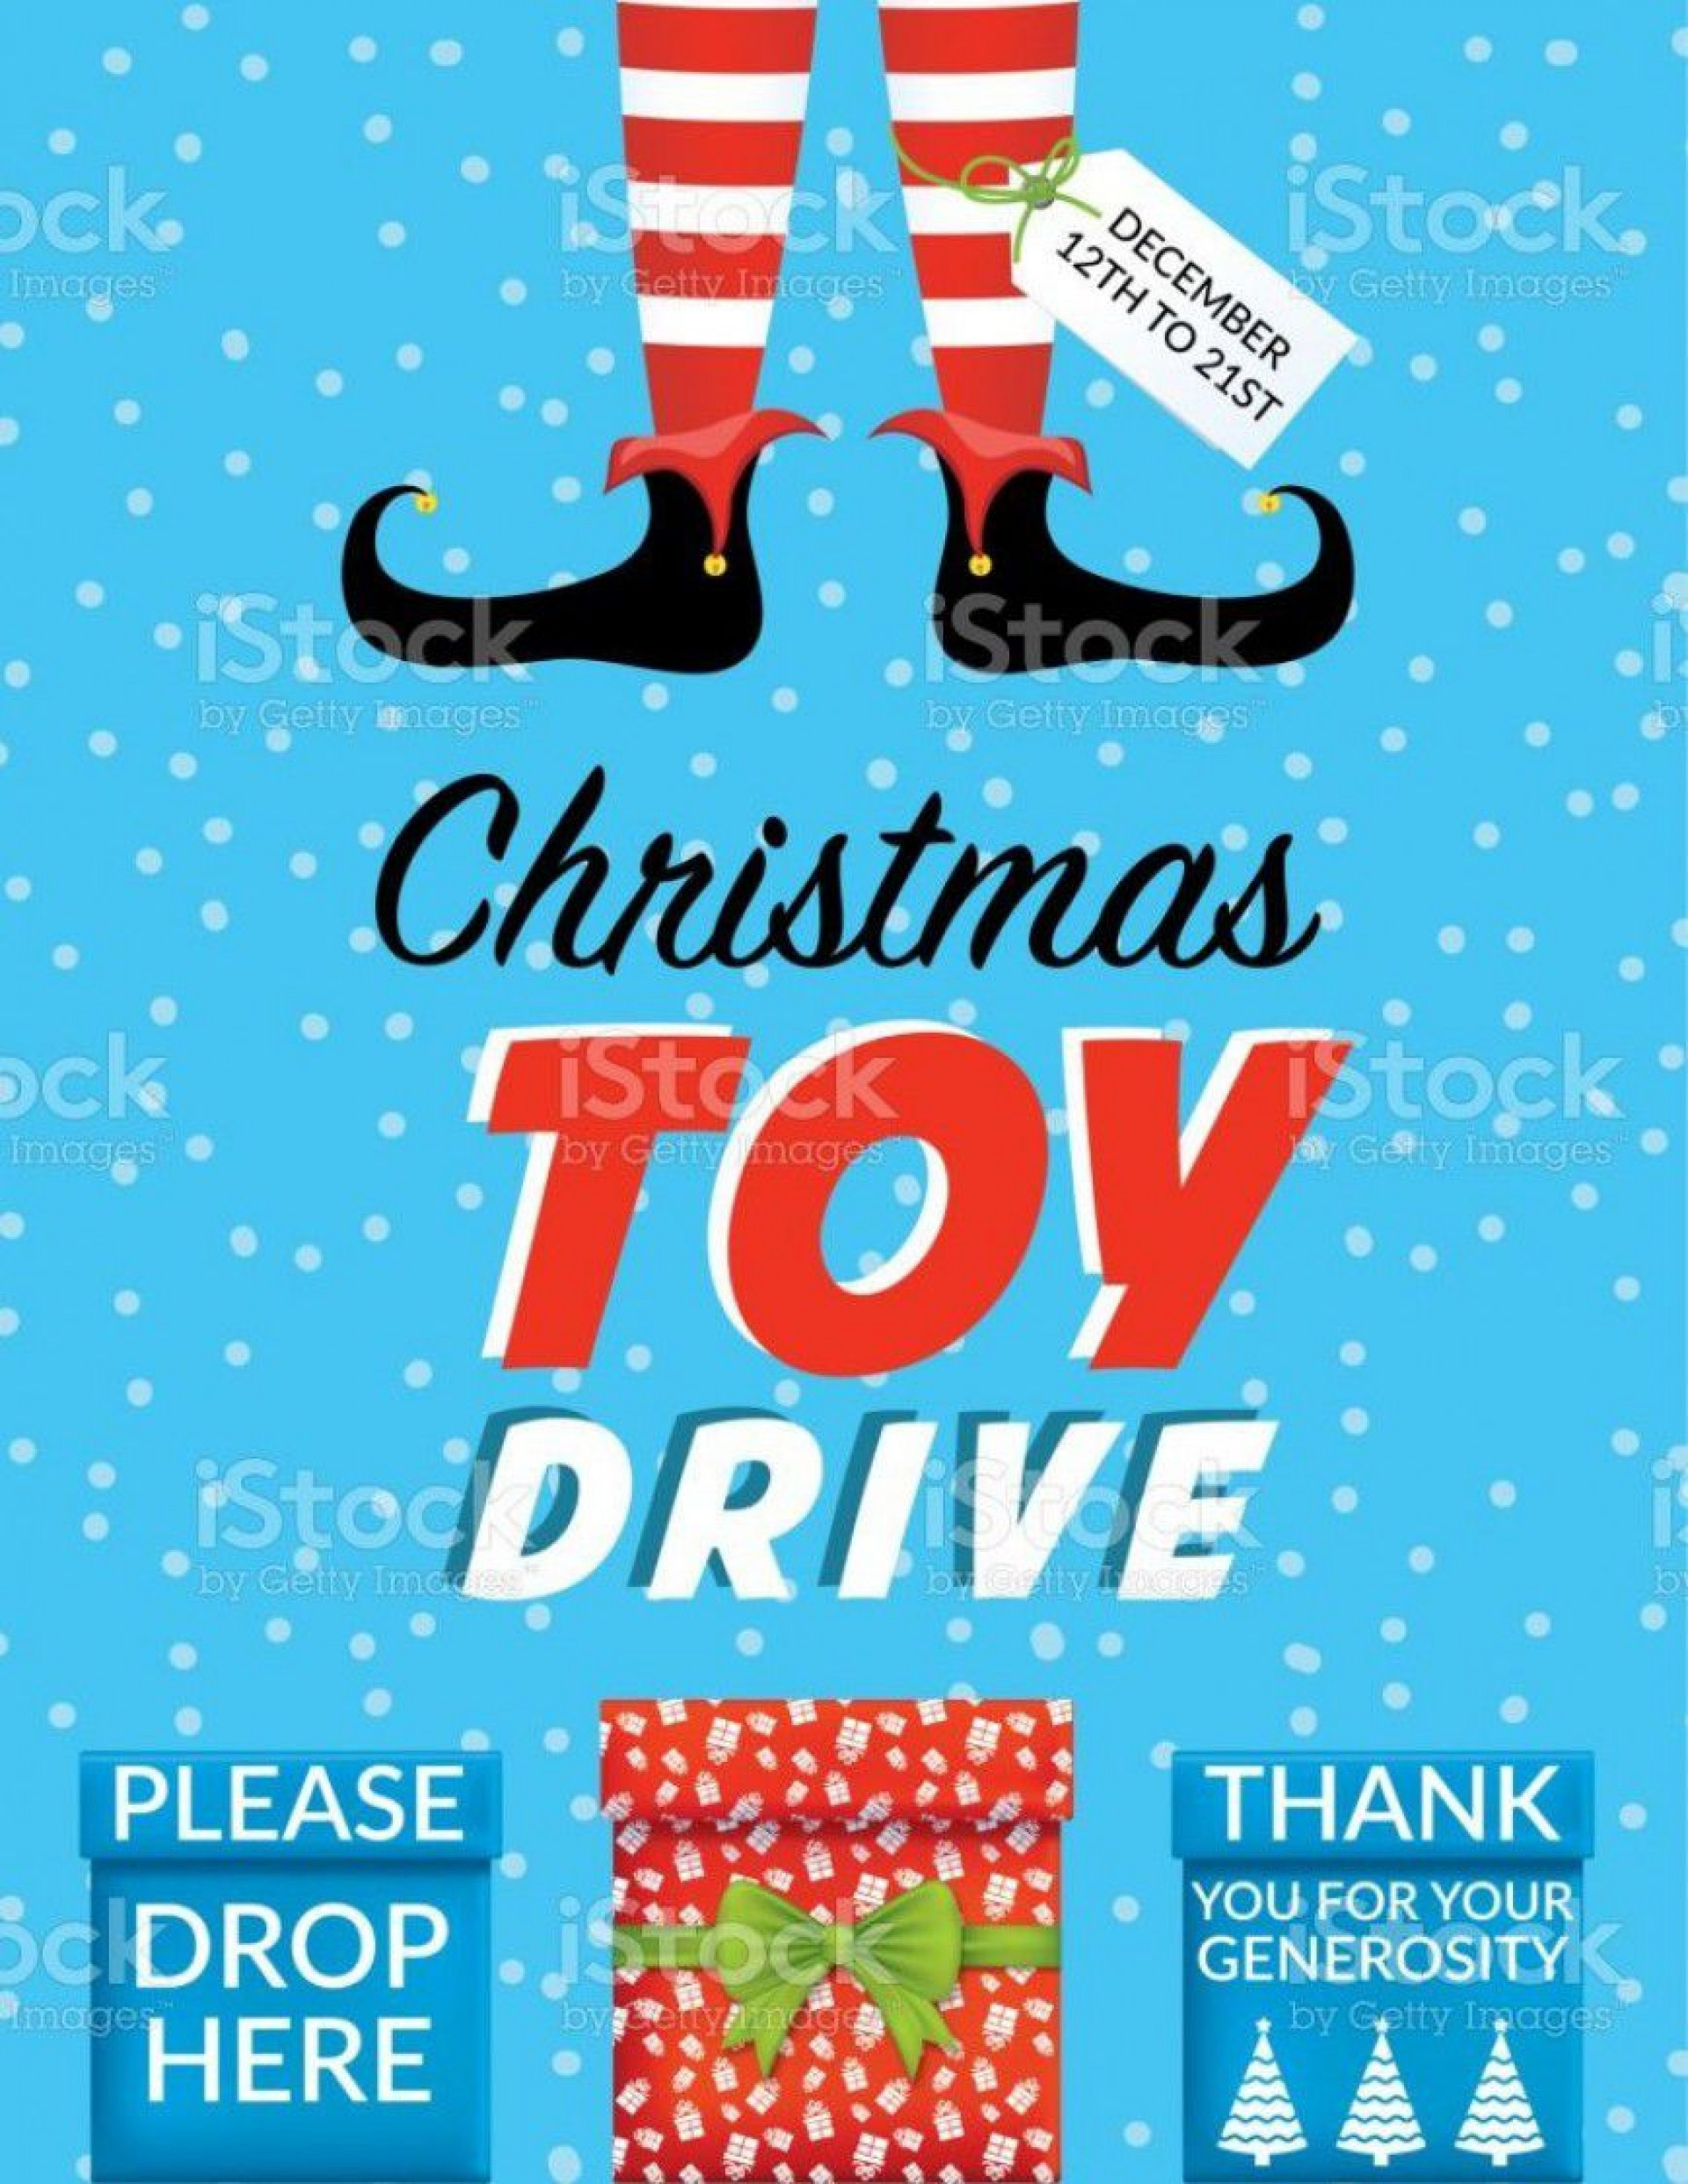 001 Stunning Toy Drive Flyer Template Photo  Holiday Download Free Word1920